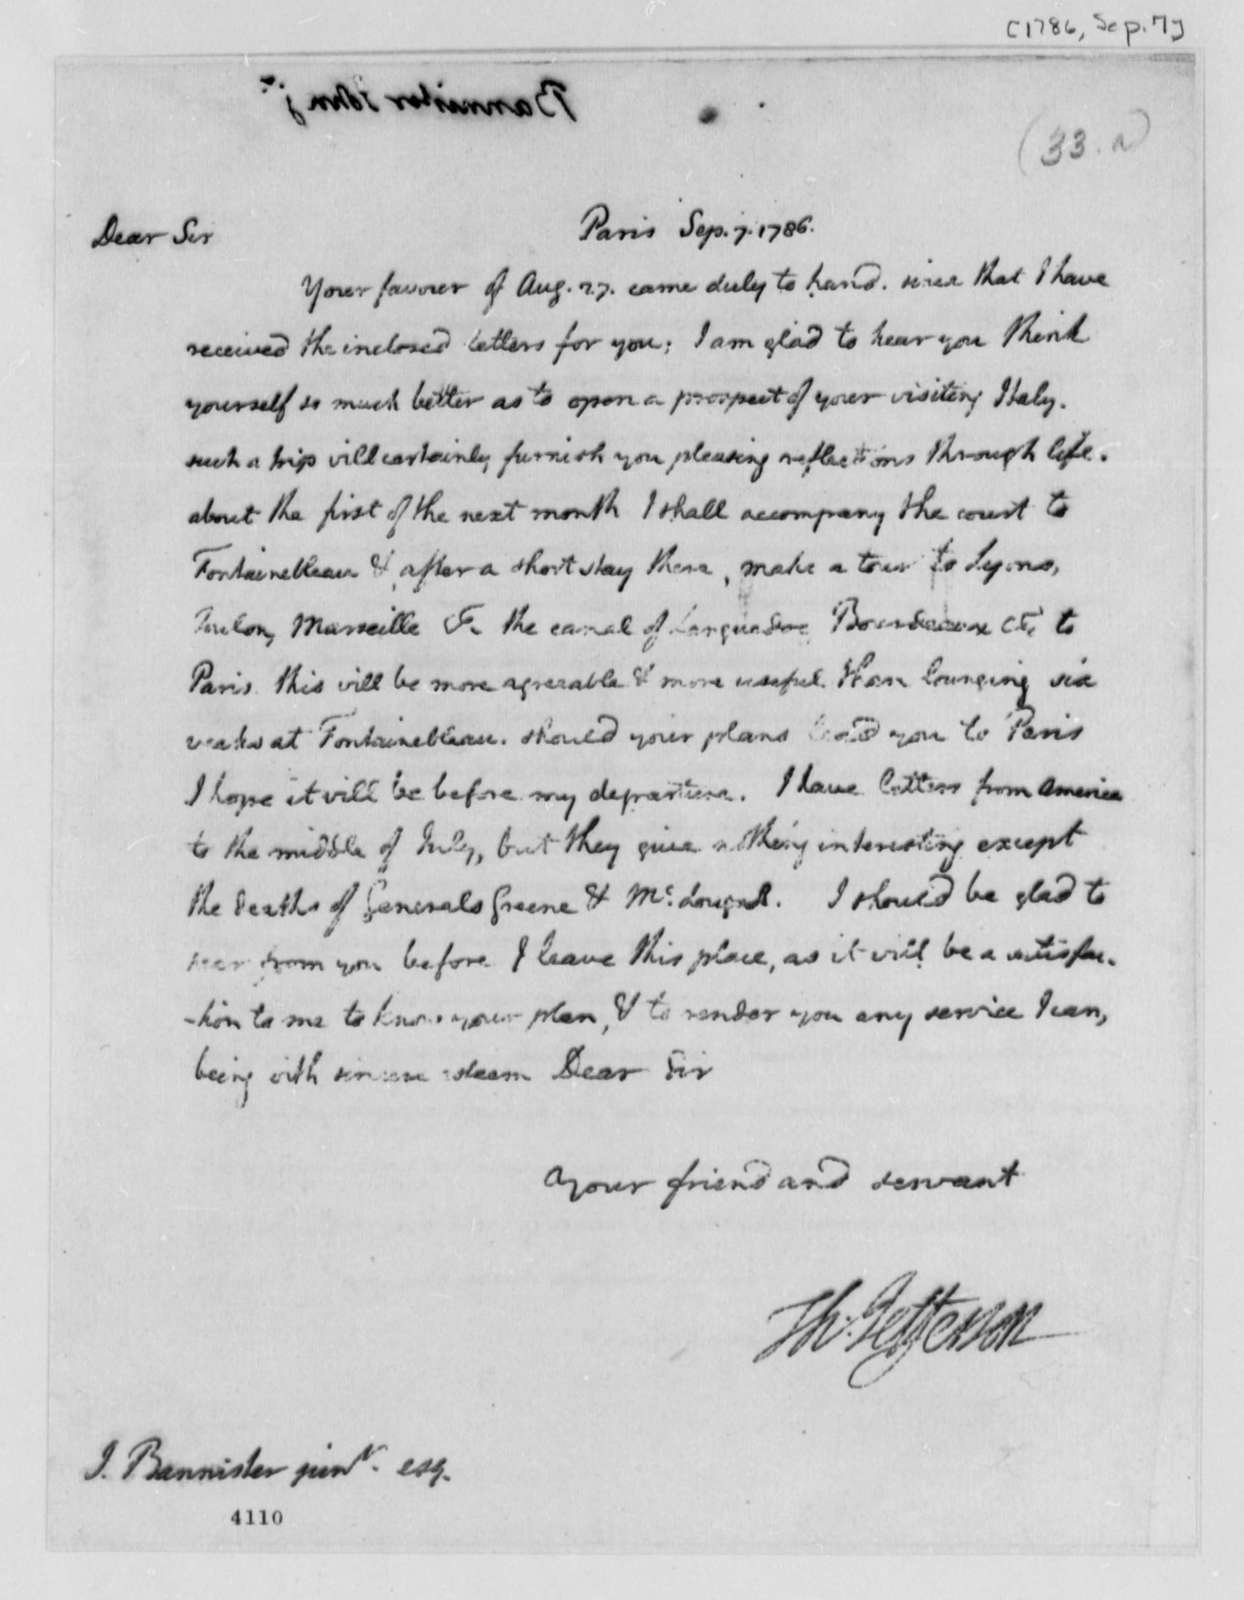 Thomas Jefferson to John Banister Jr., September 7, 1786